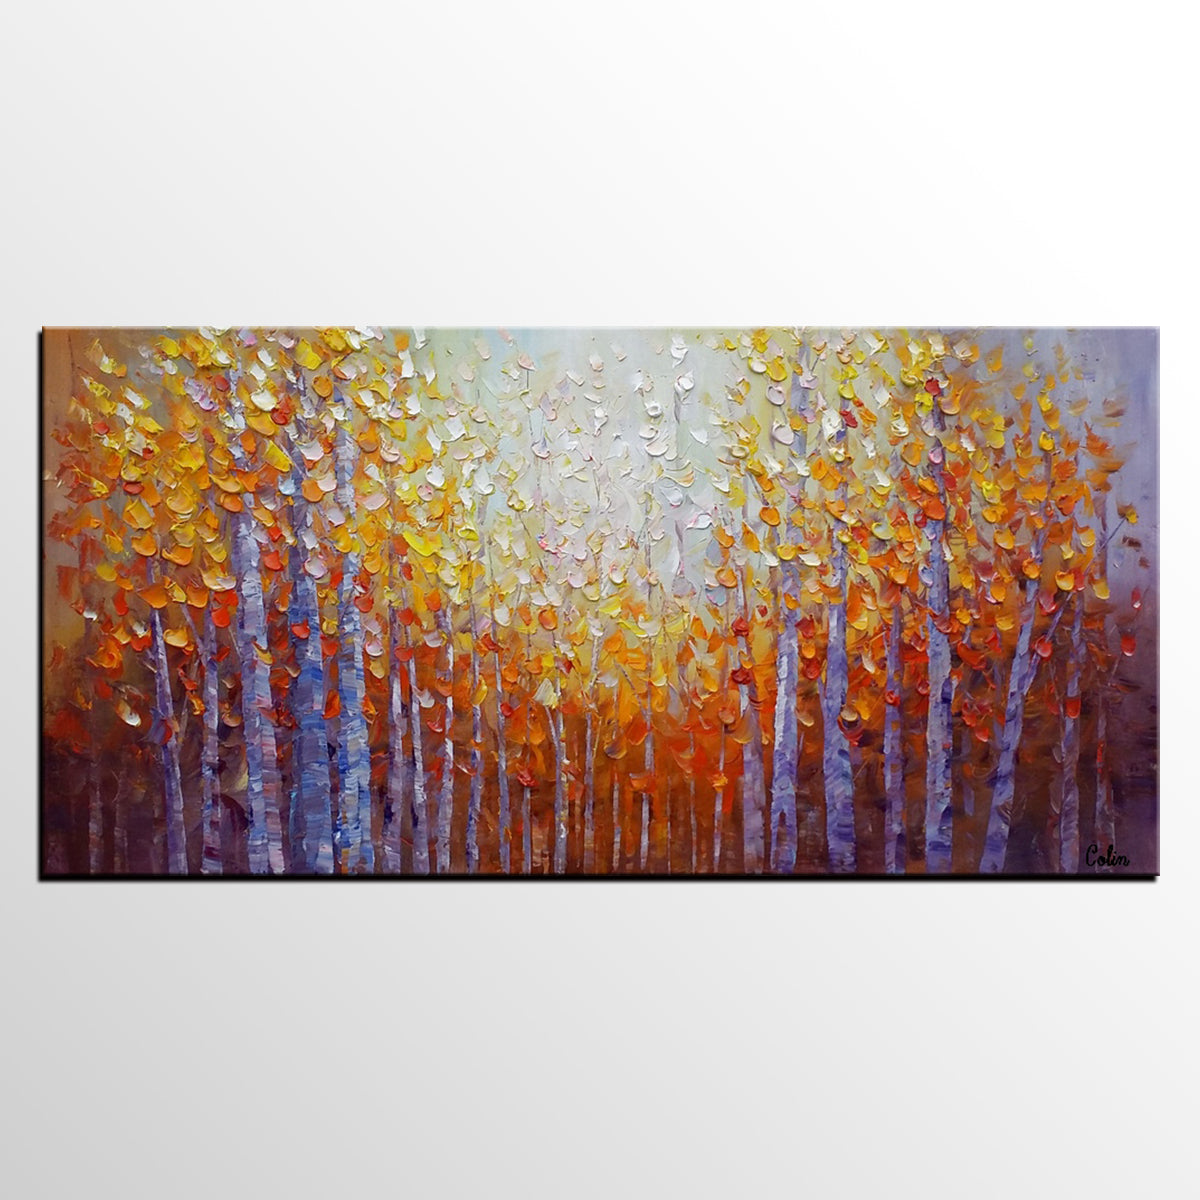 Dining Room Wall Art, Abstract Art, Original Art, Autumn Tree Painting, Abstract Painting, Large Art, Canvas Art, Oil Painting for Sale